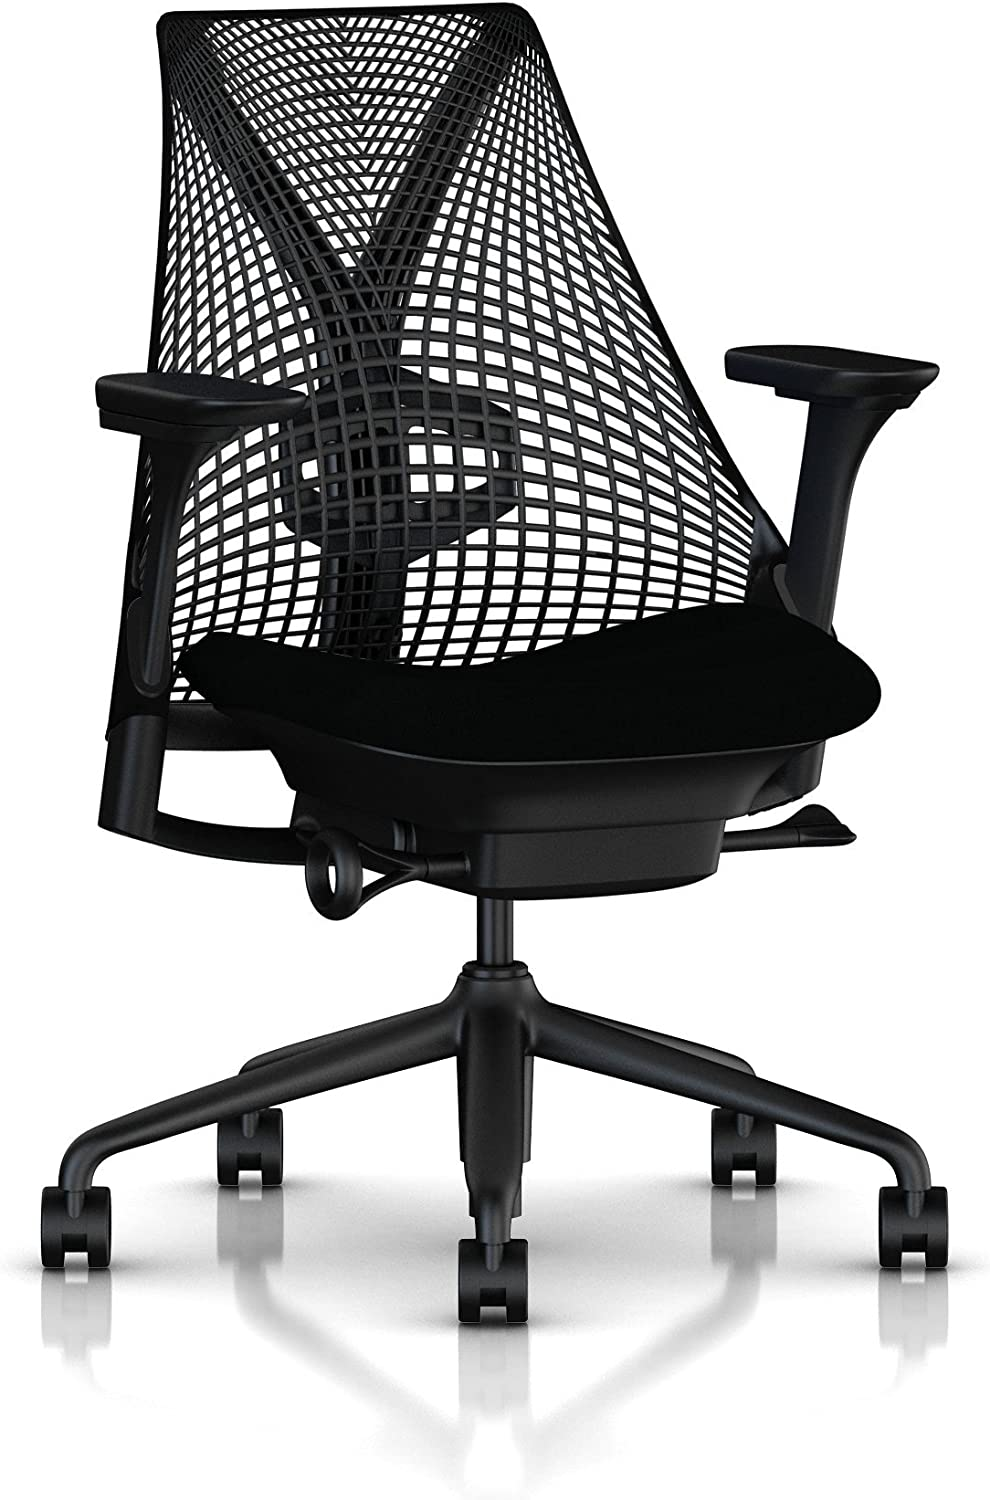 Herman Miller Sayl Ergonomic Office Chair with Tilt Limiter and Carpet Casters | Adjustable Seat Angle/Depth, Lumbar Support, and Arms | Black Frame with Black Rhythm Seat: Kitchen & Dining